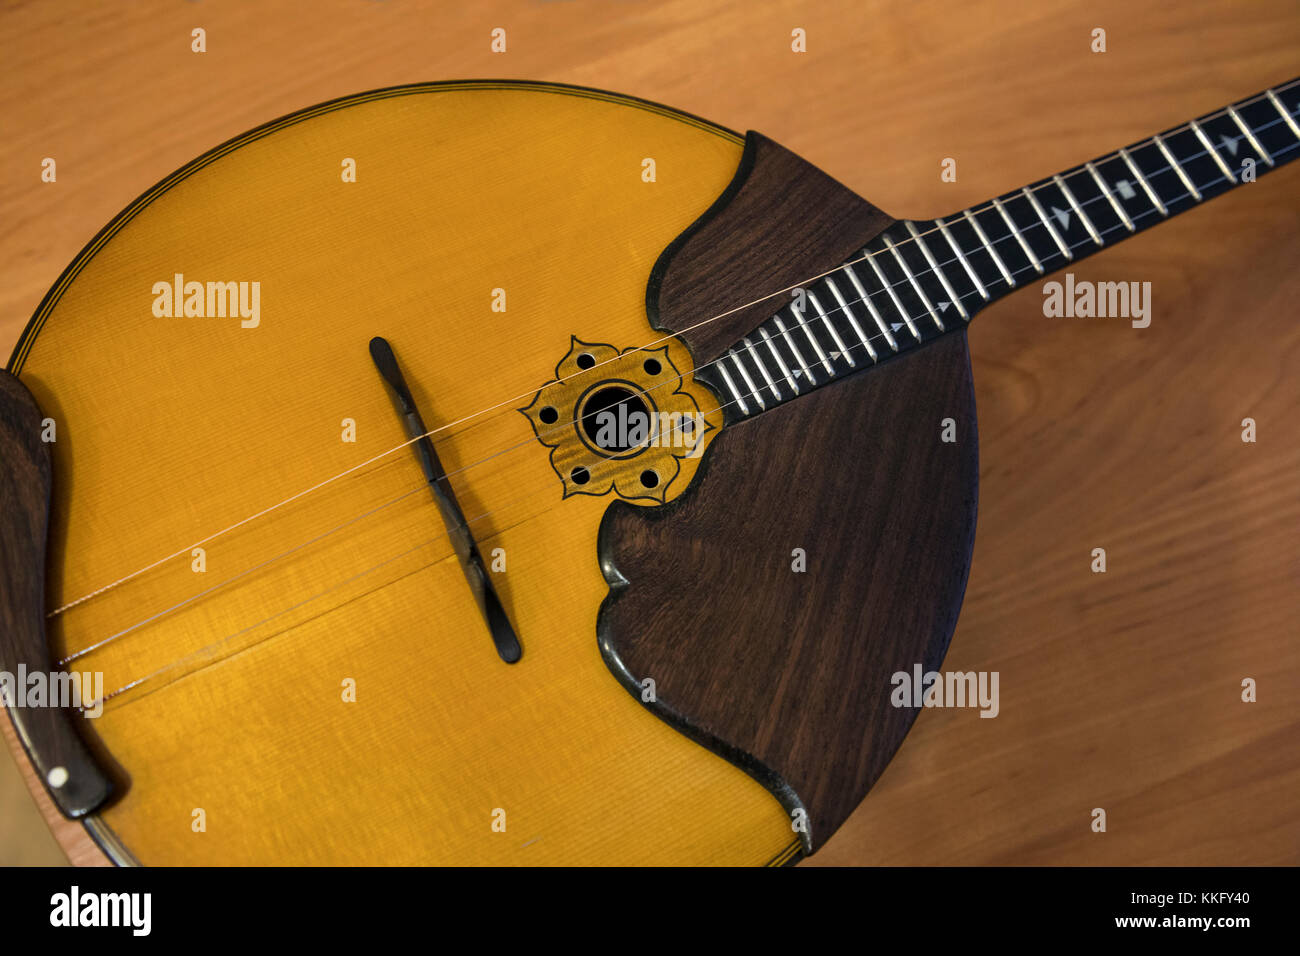 Domra is a long-necked Russian, Belarusian and Ukrainian folk string instrument - Stock Image